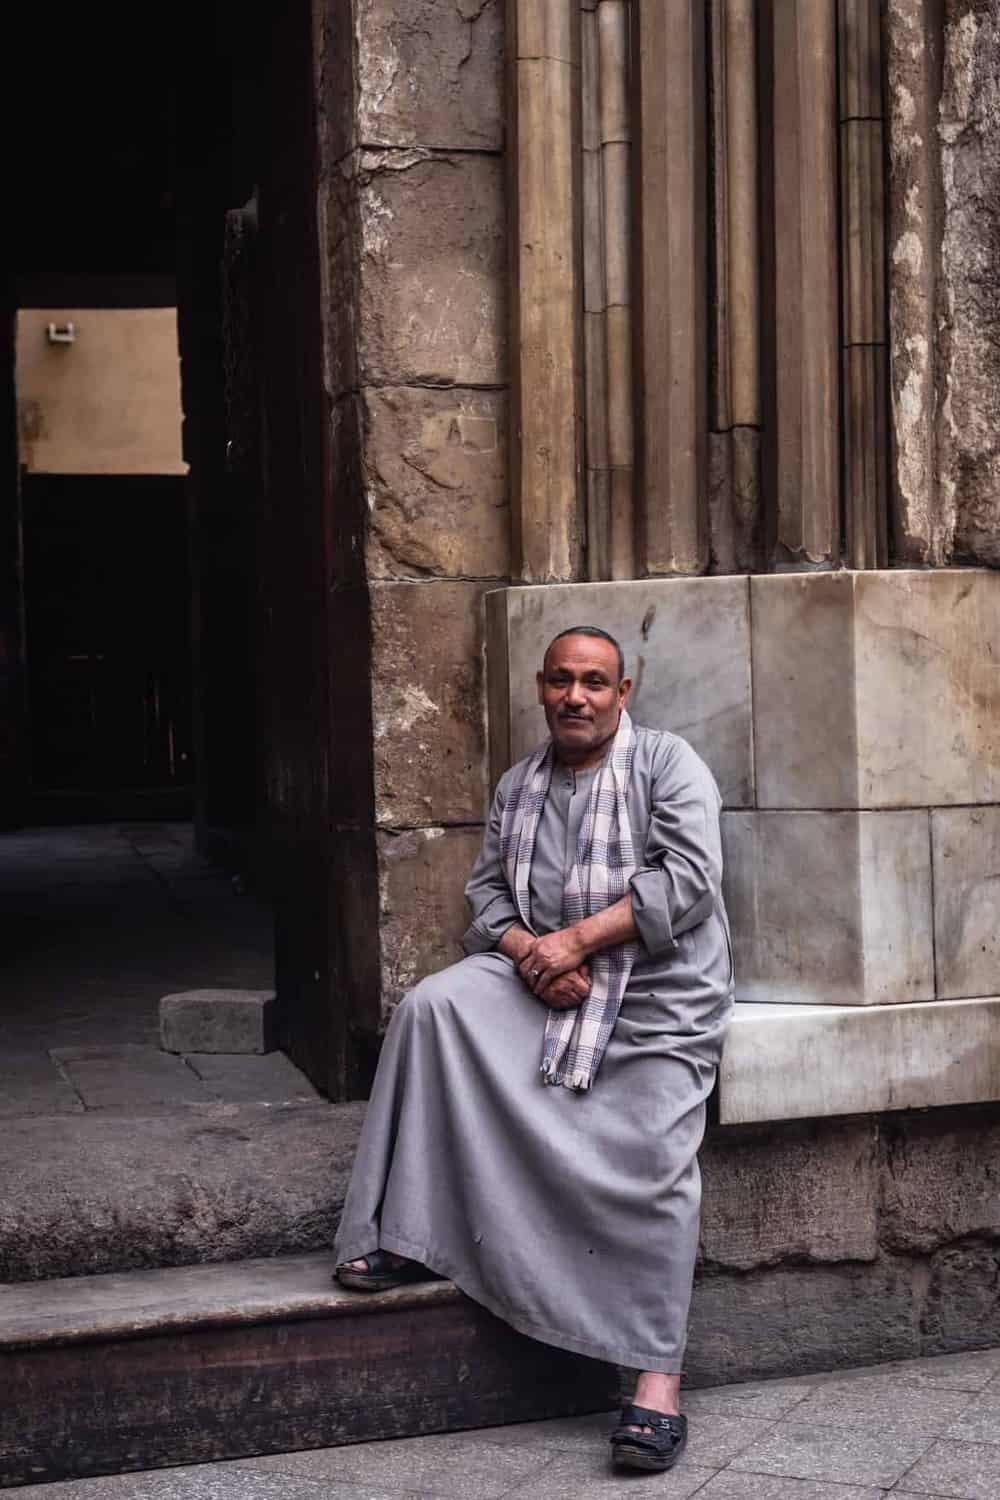 portrait shot of a man wearing traditional Egyptian clothing posing in Old Cairo.